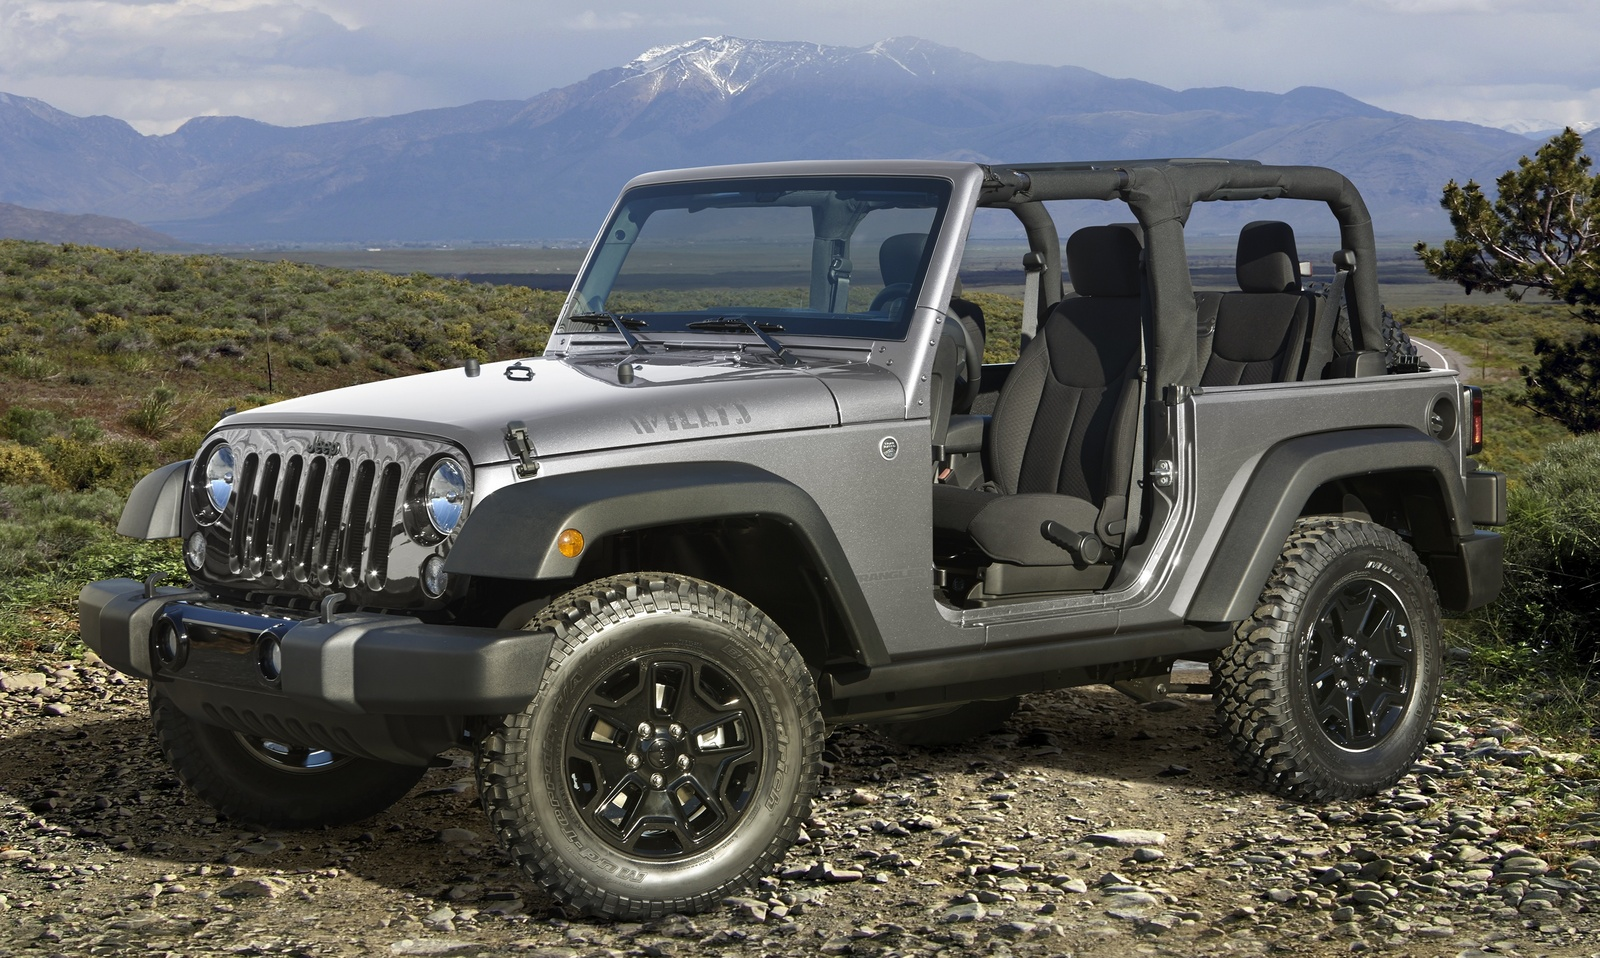 The 2015 Jeep Wrangler continues the tradition of being the most ...